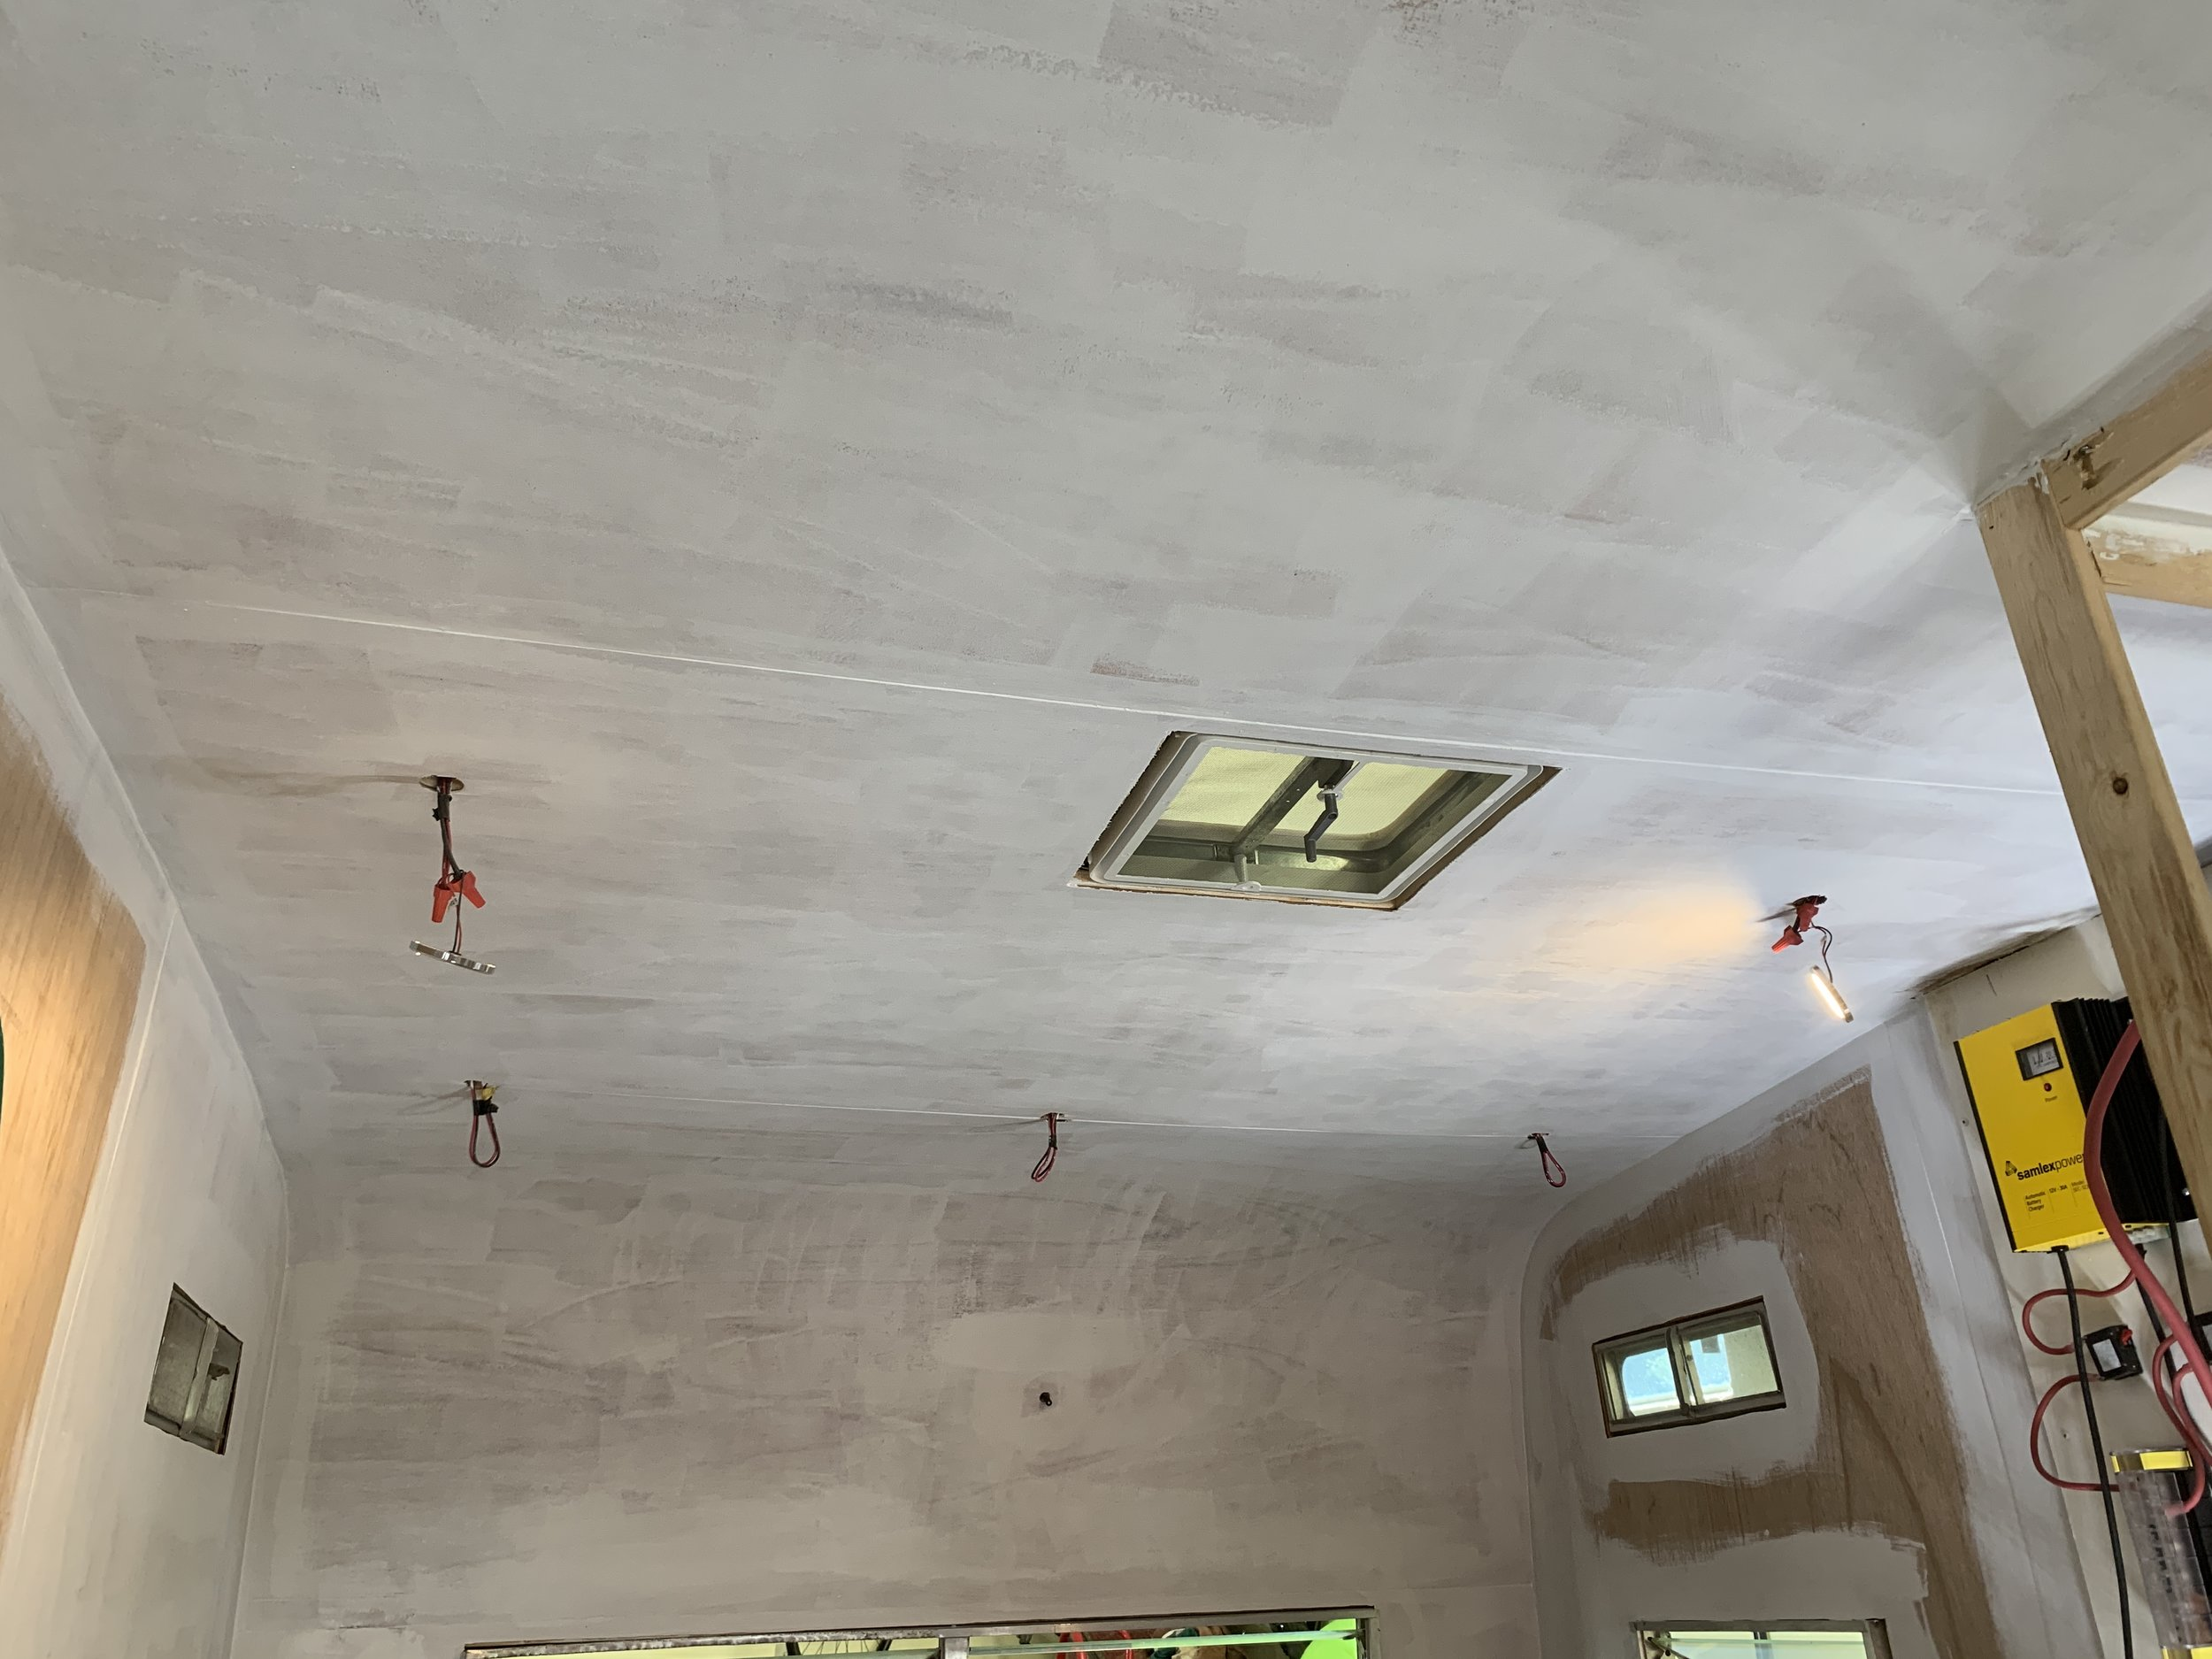 The Cameo Camper Renovation Insulating Installing Walls Ceiling Lone Oak Design Co